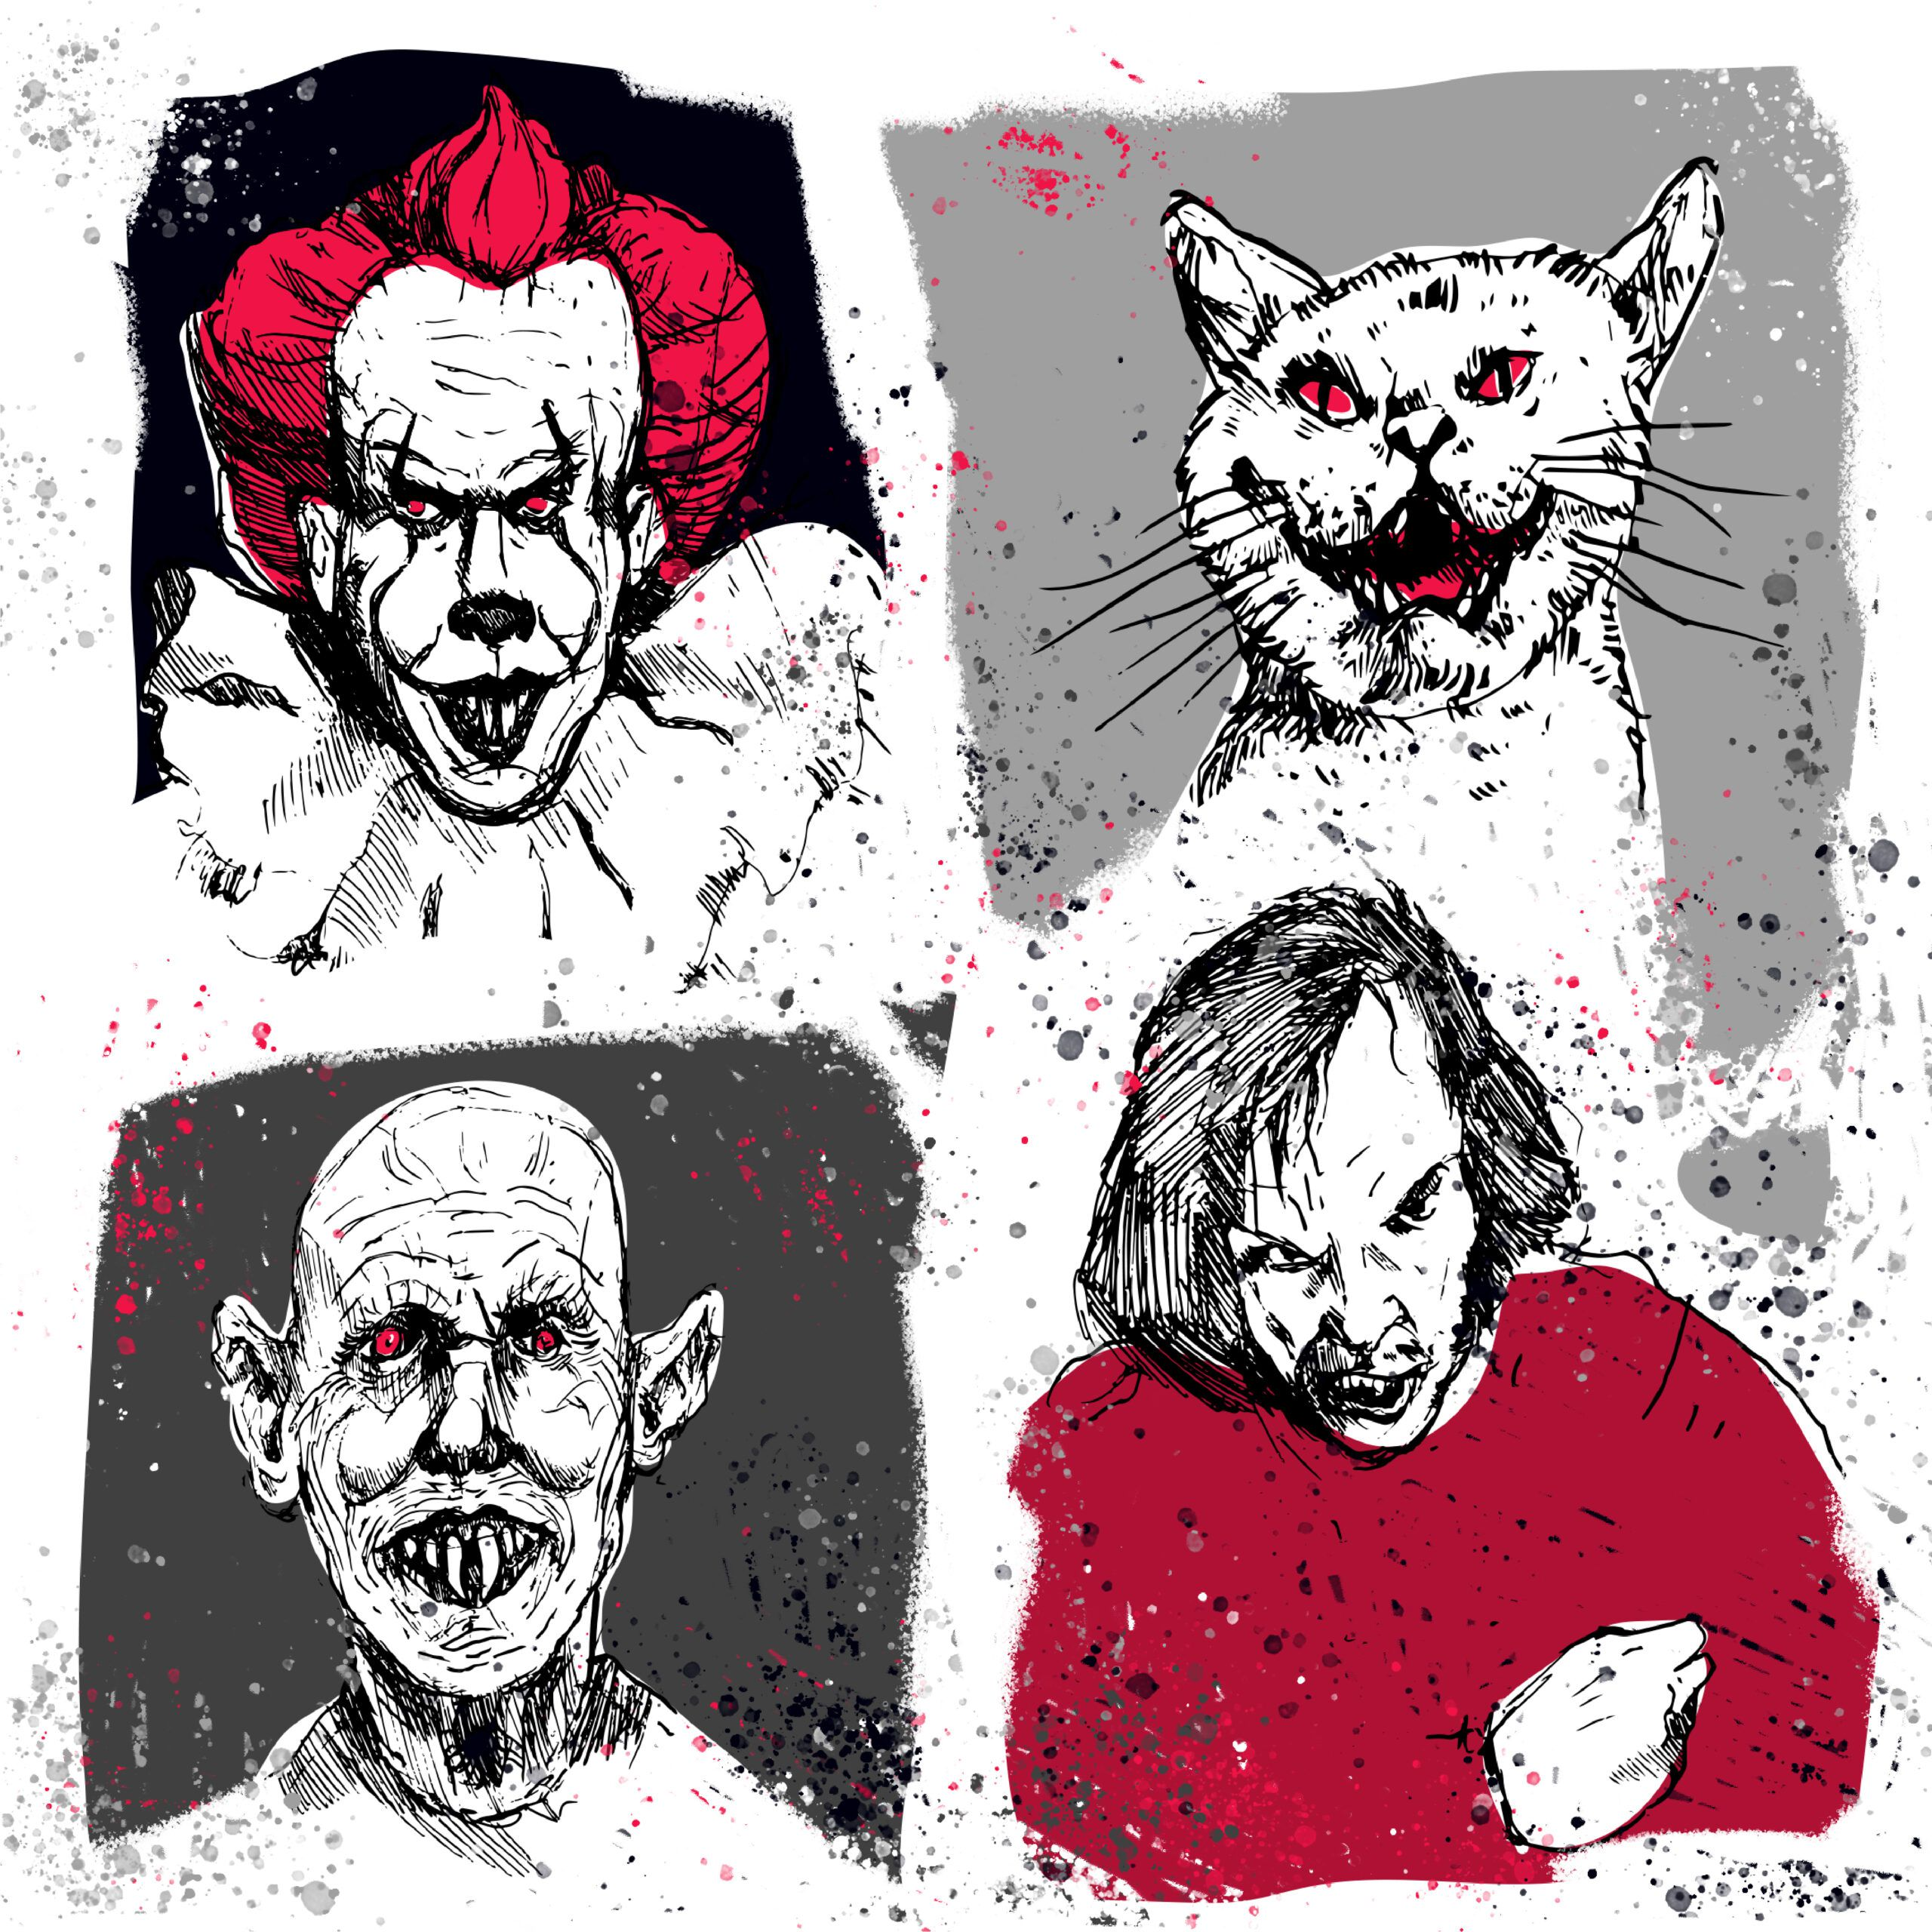 Creepy artwork of 4 Stephen King characters, including Pennywise